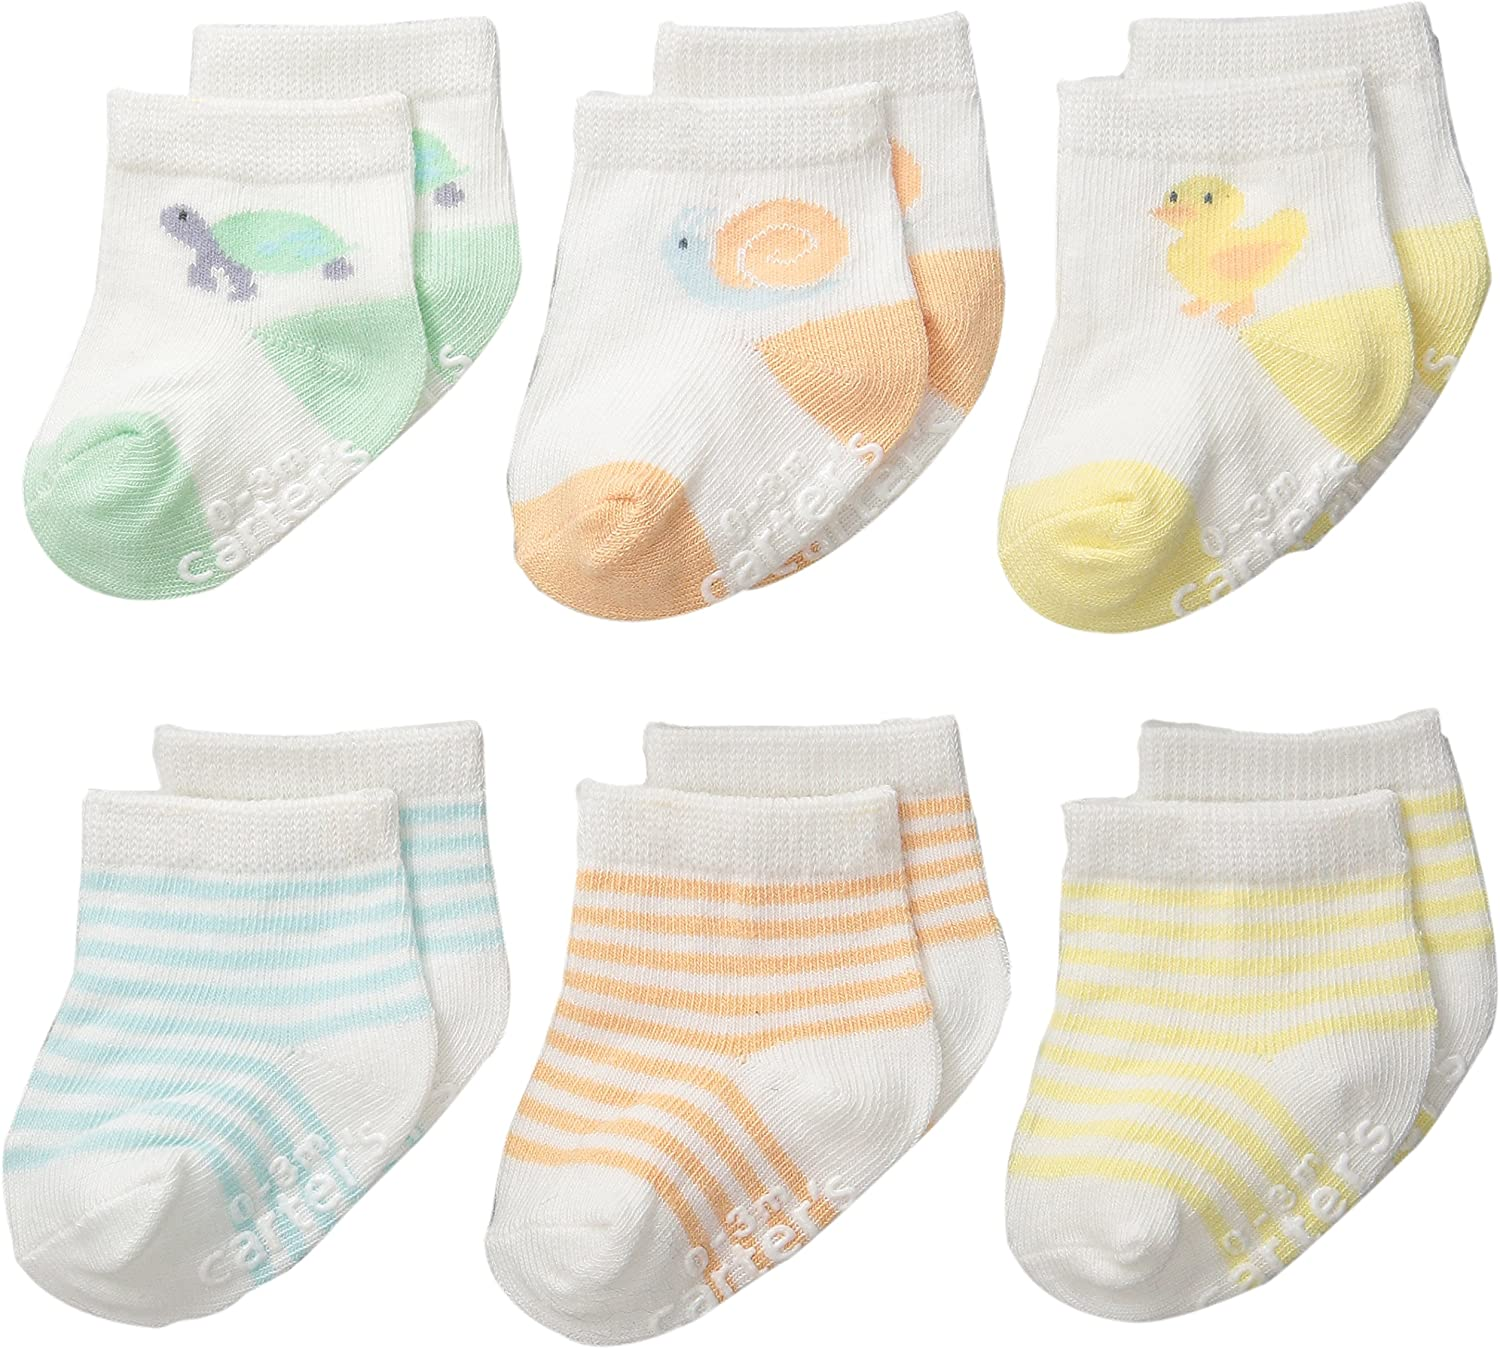 Country Kids Unisex-Baby Newborn Nonskid Turncuff 3 Pair